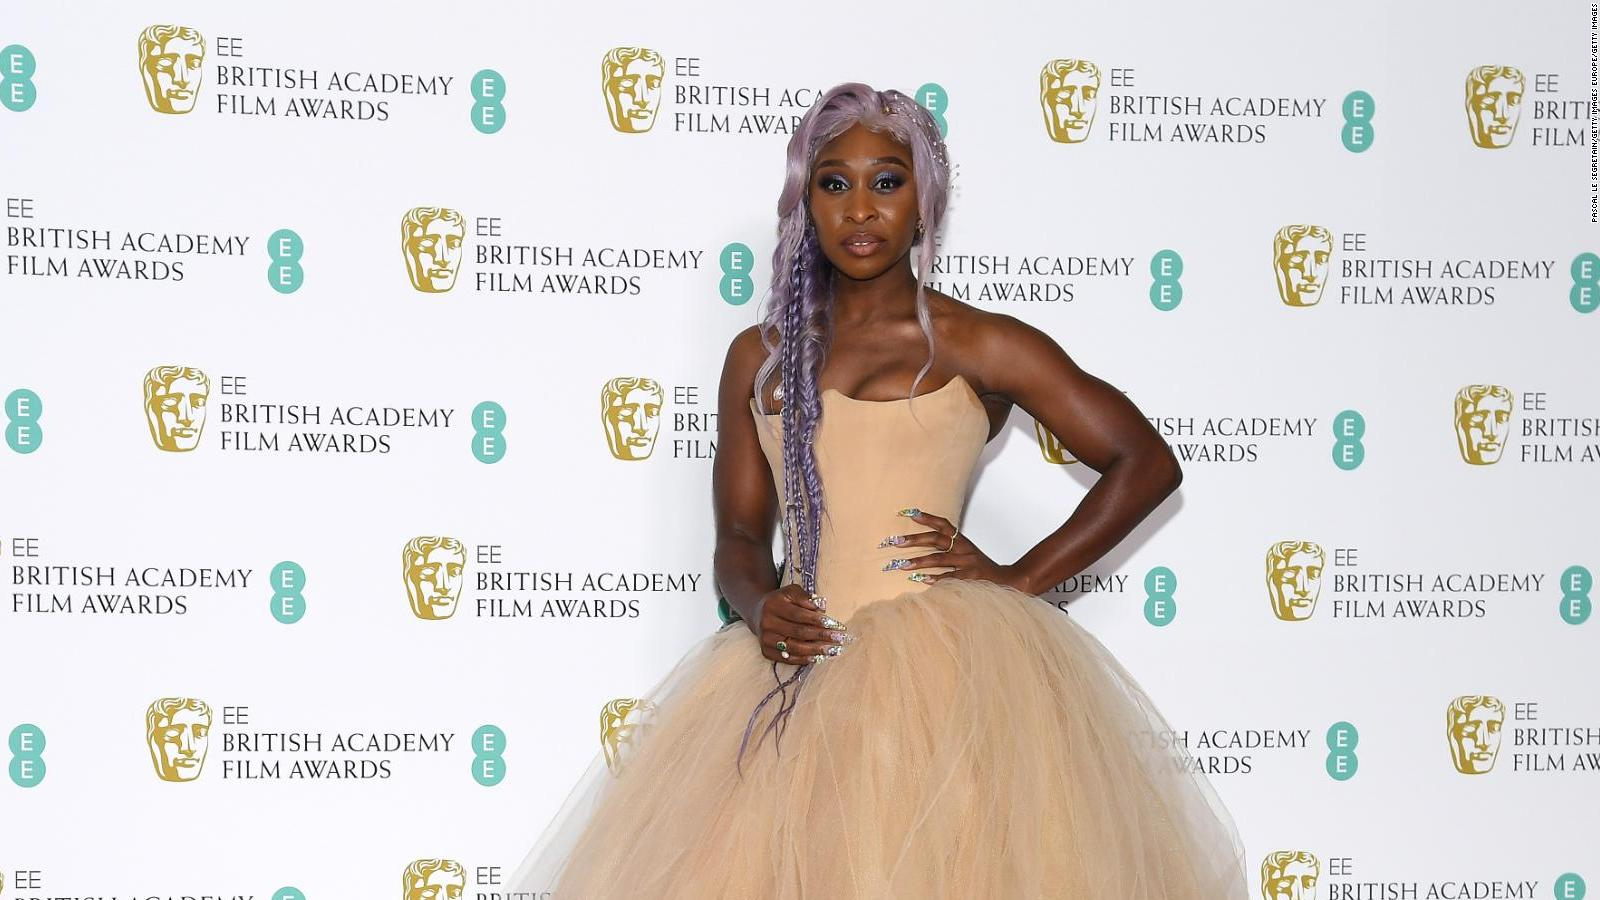 Baftas Red Carpet The Best Fashion Moments Cnn Style